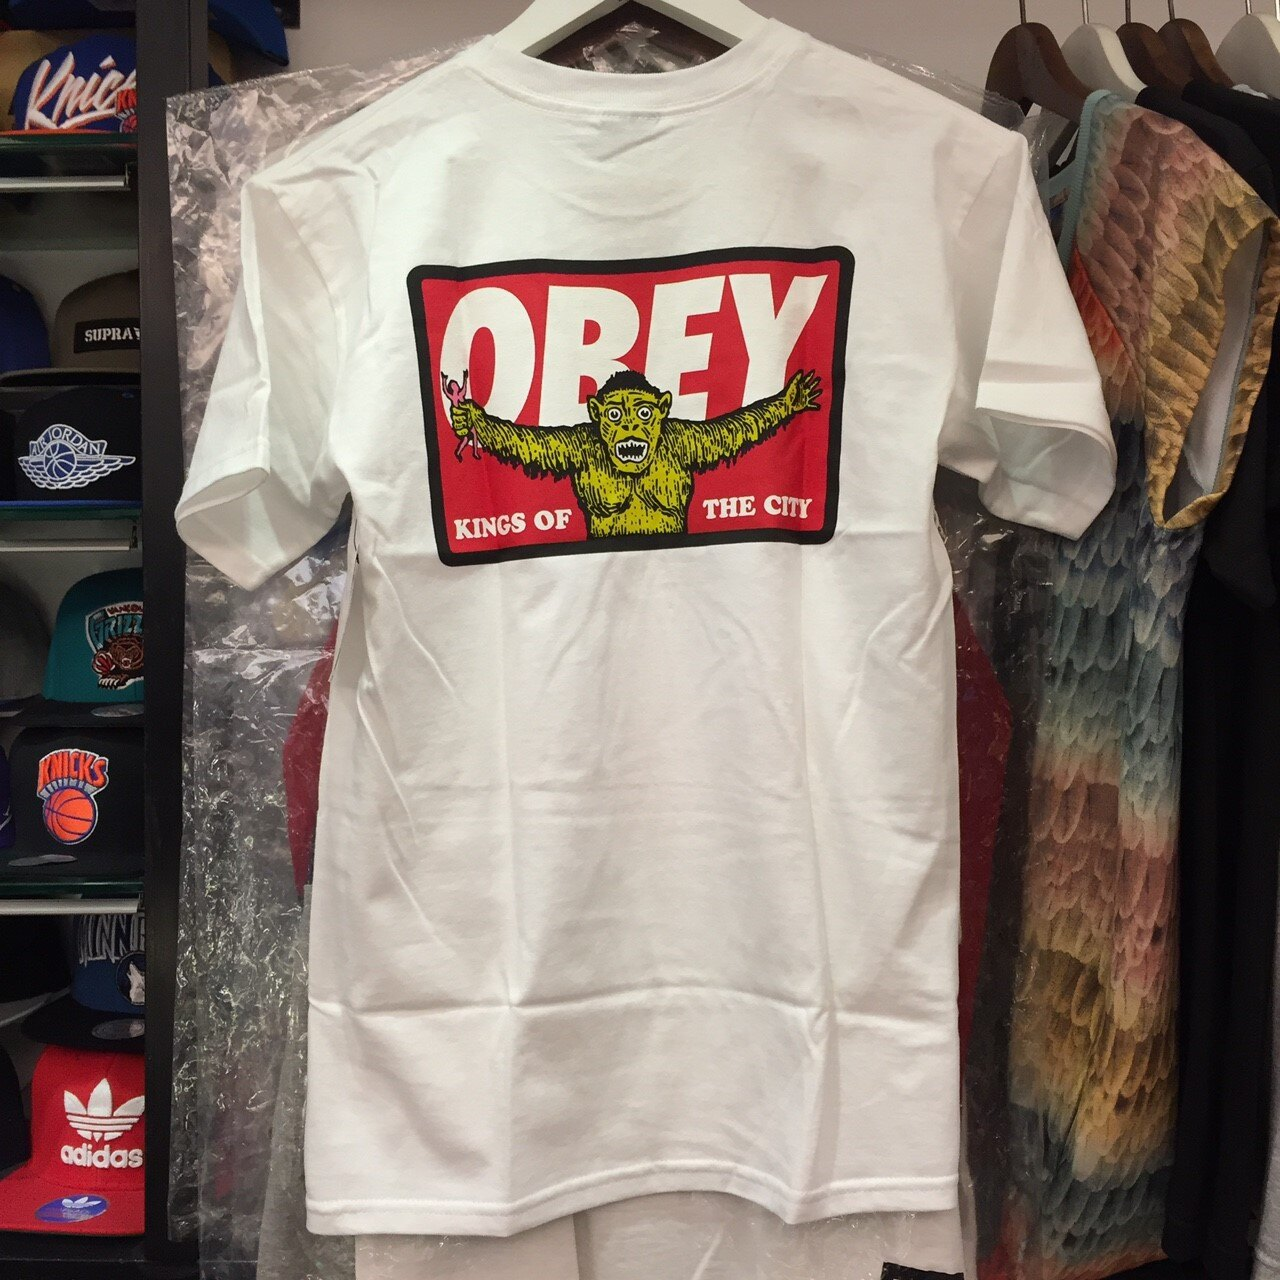 BEETLE OBEY KINGS OF THE CITY 城市之王 全白 紅字 LOGO 短T TEE OB-415 163081152WHT 2